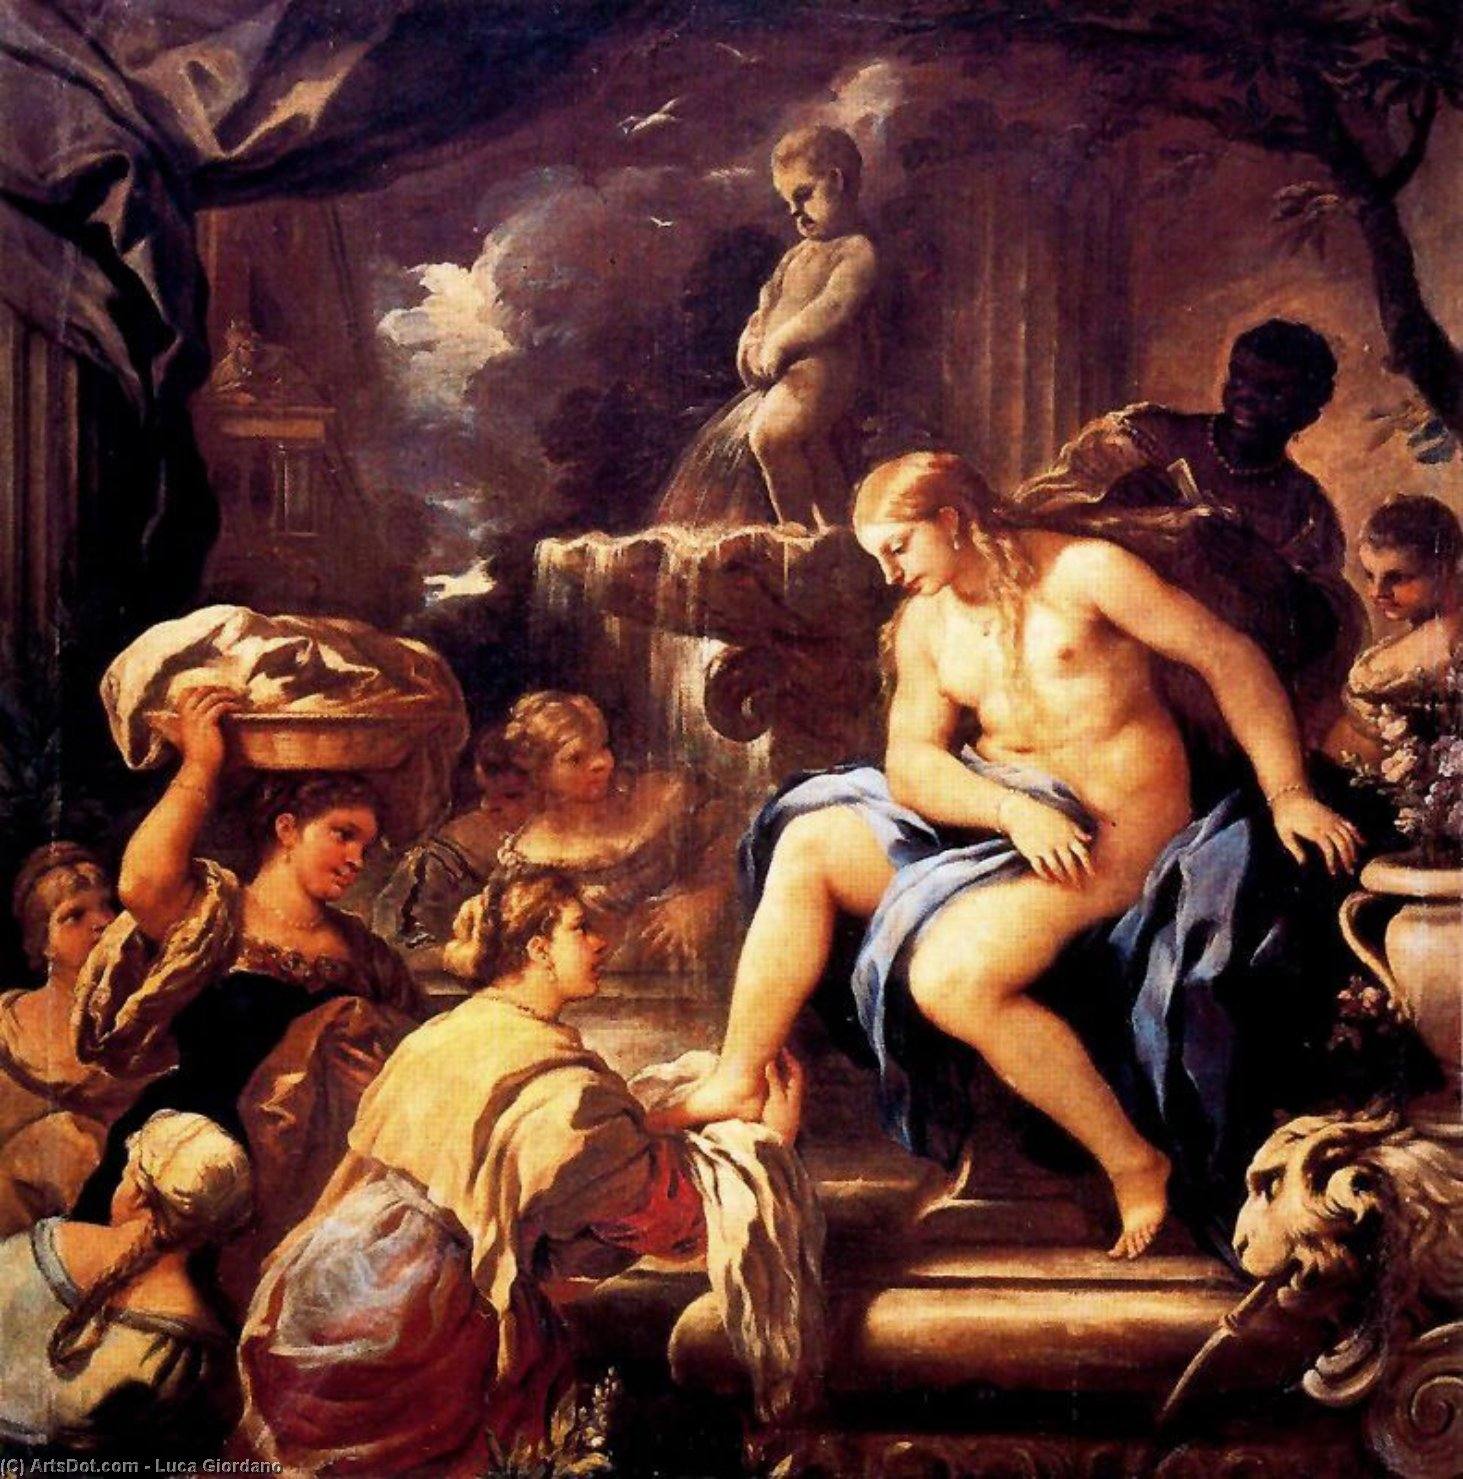 Bathsheba in the bath by Luca Giordano (1634-1705, Italy)